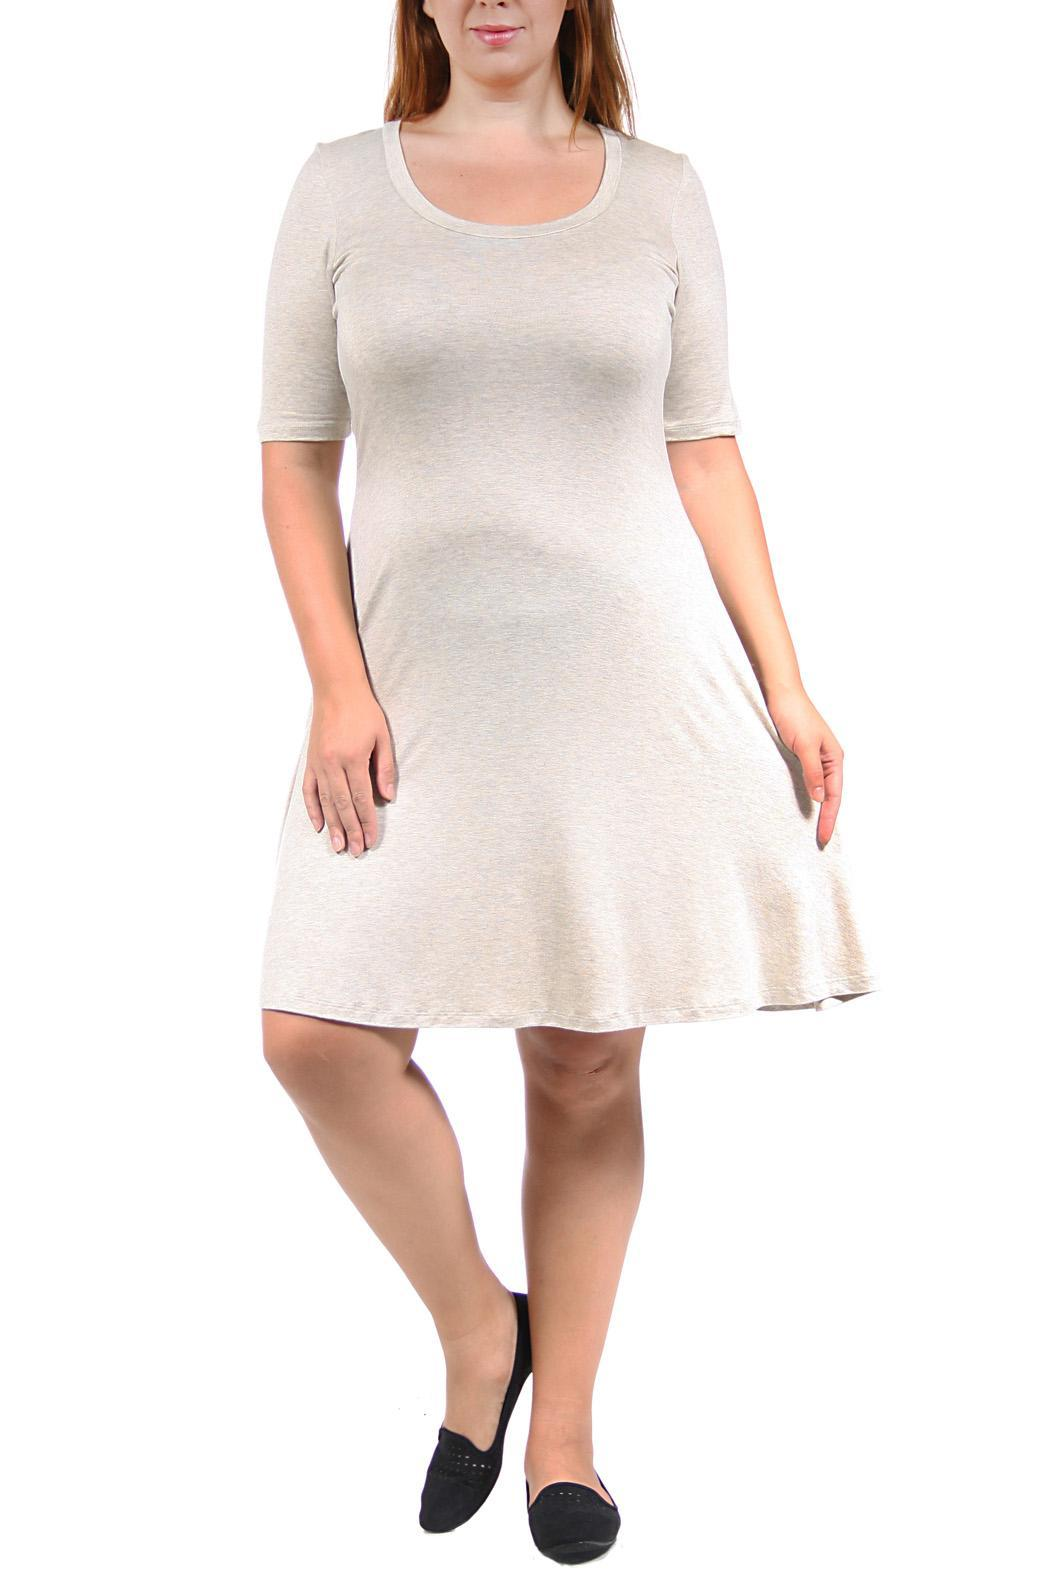 24/7 Comfort Apparel Elbow-Sleeve Dress from California by ...